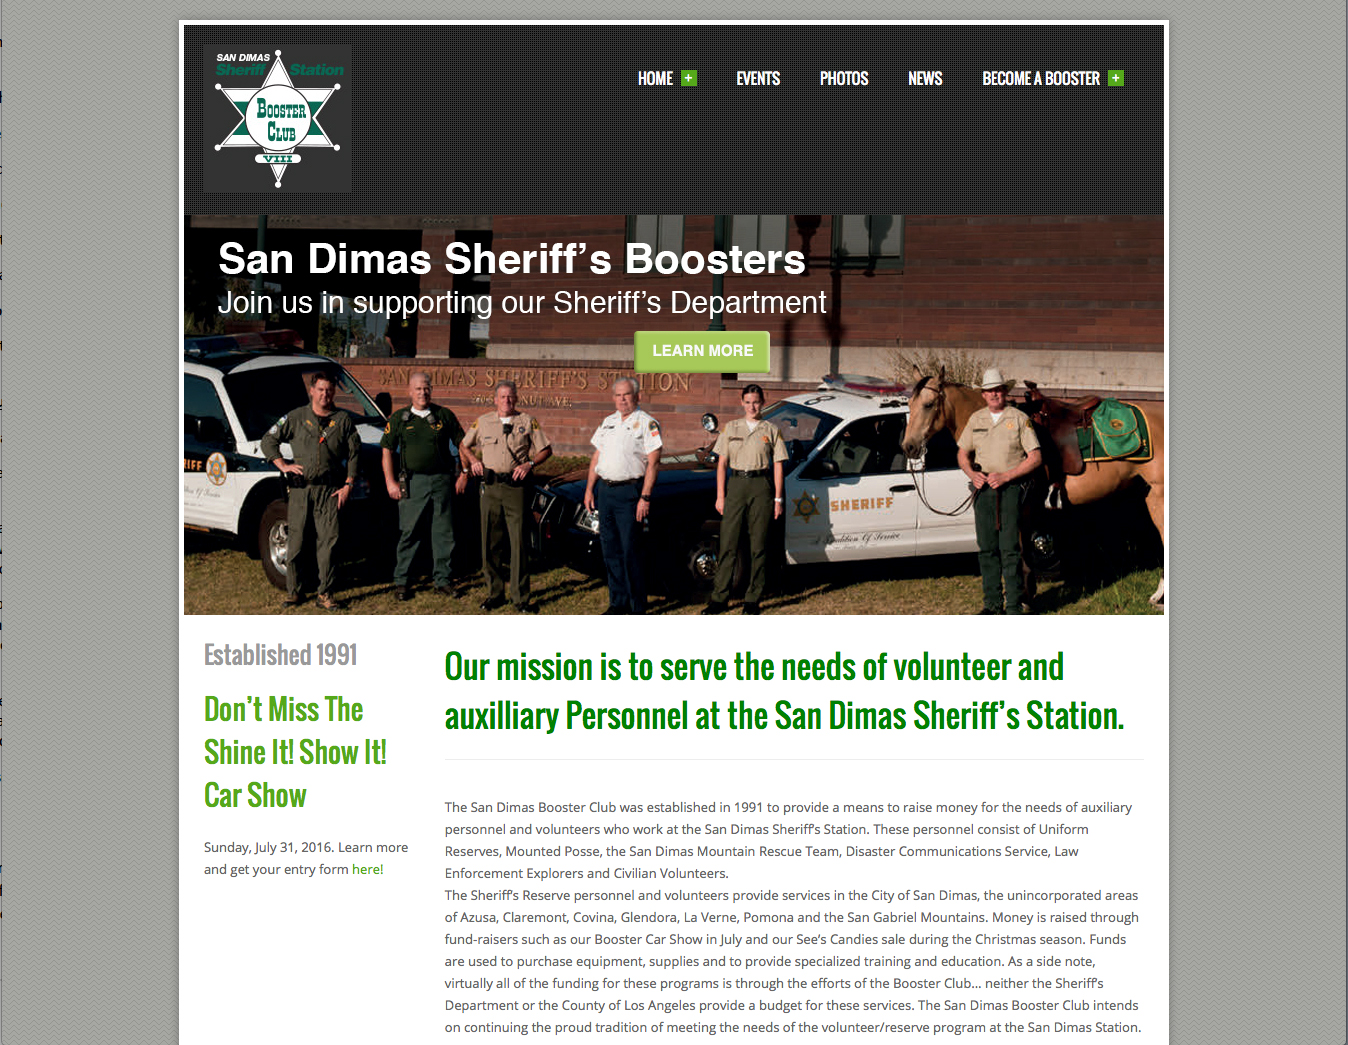 Non-profit website design for San Dimas Sheriff's Boosters